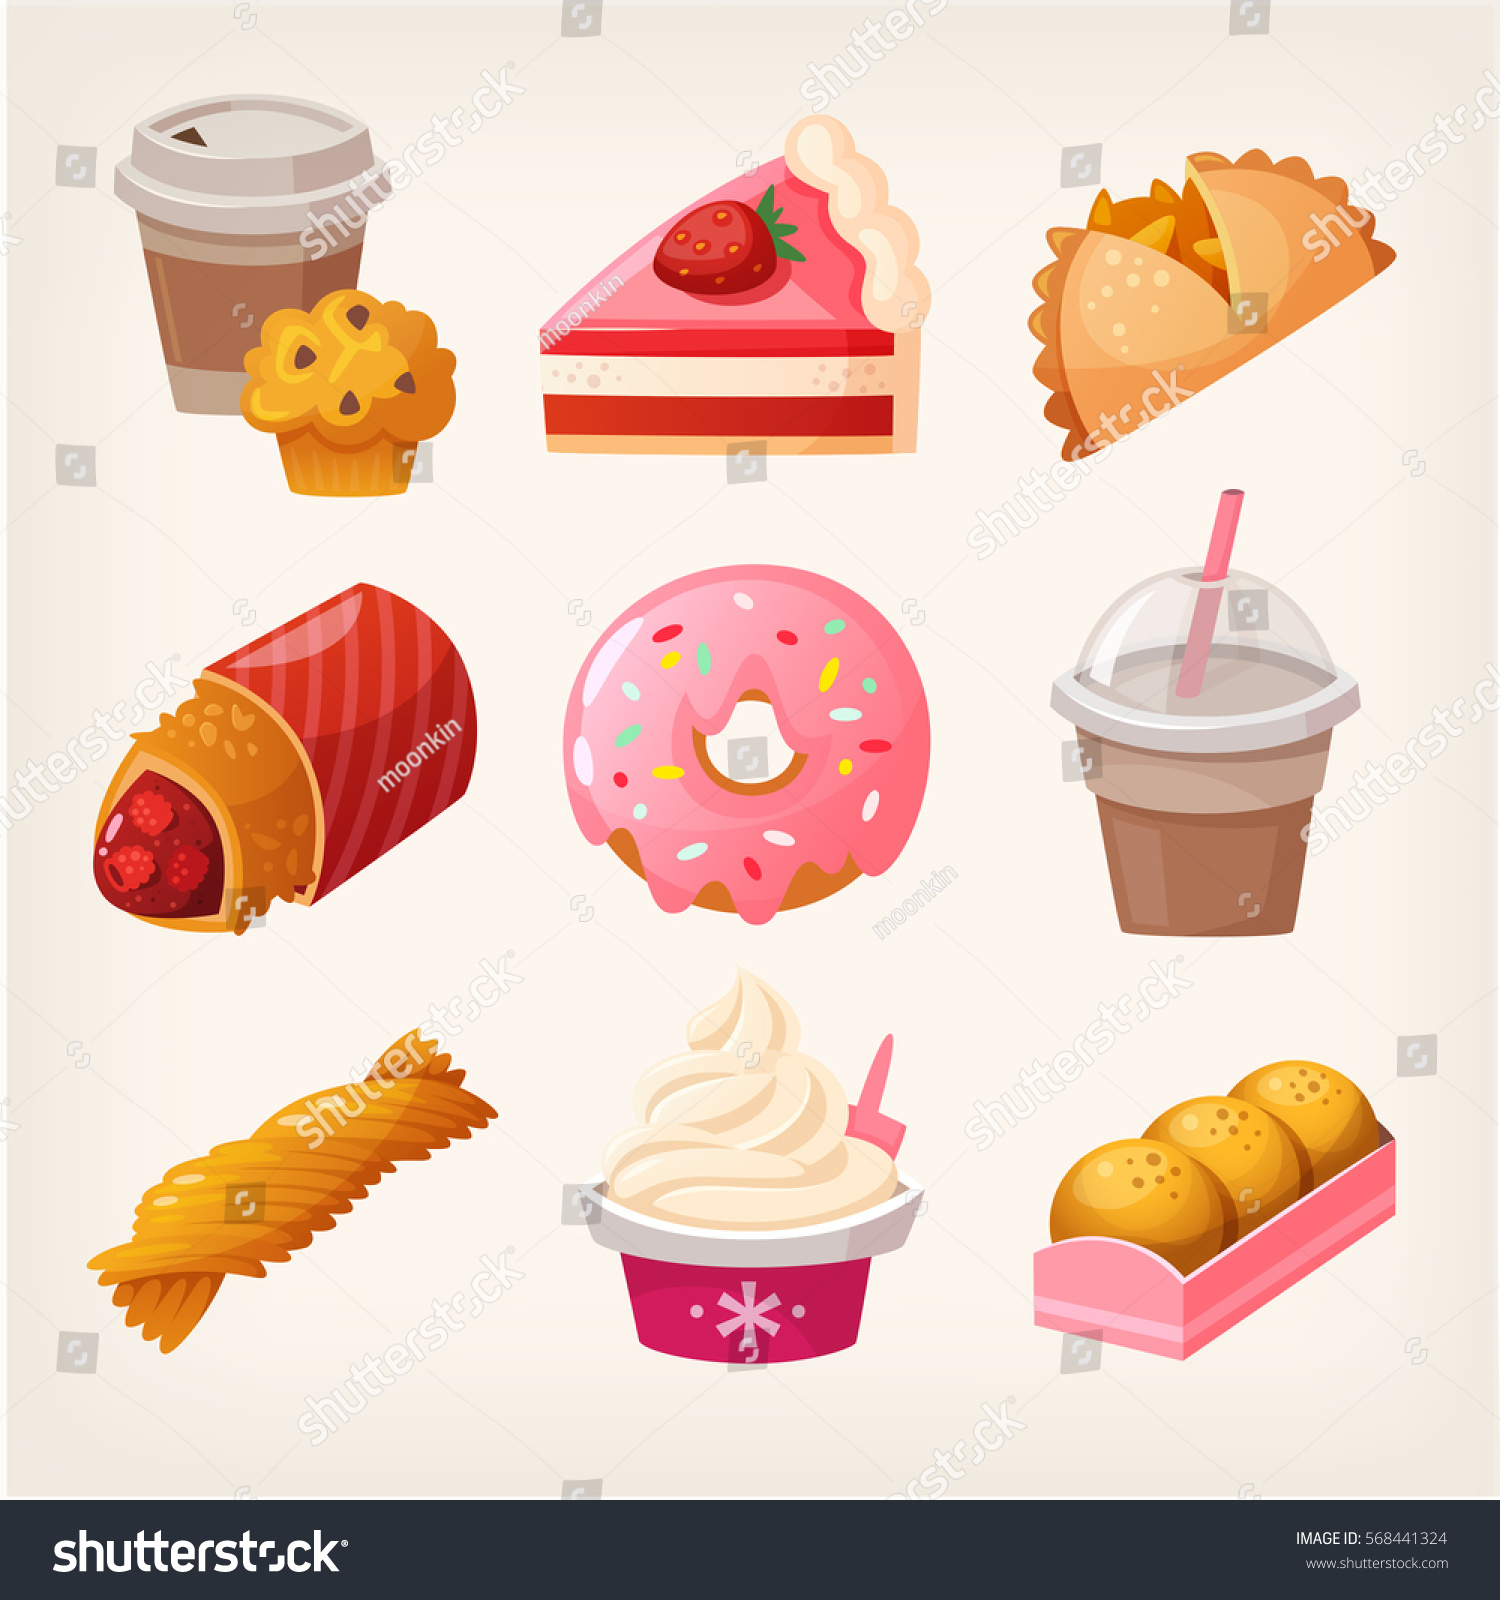 Set Colorful Fast Food Desserts Sweets Stock Vector Royalty Free